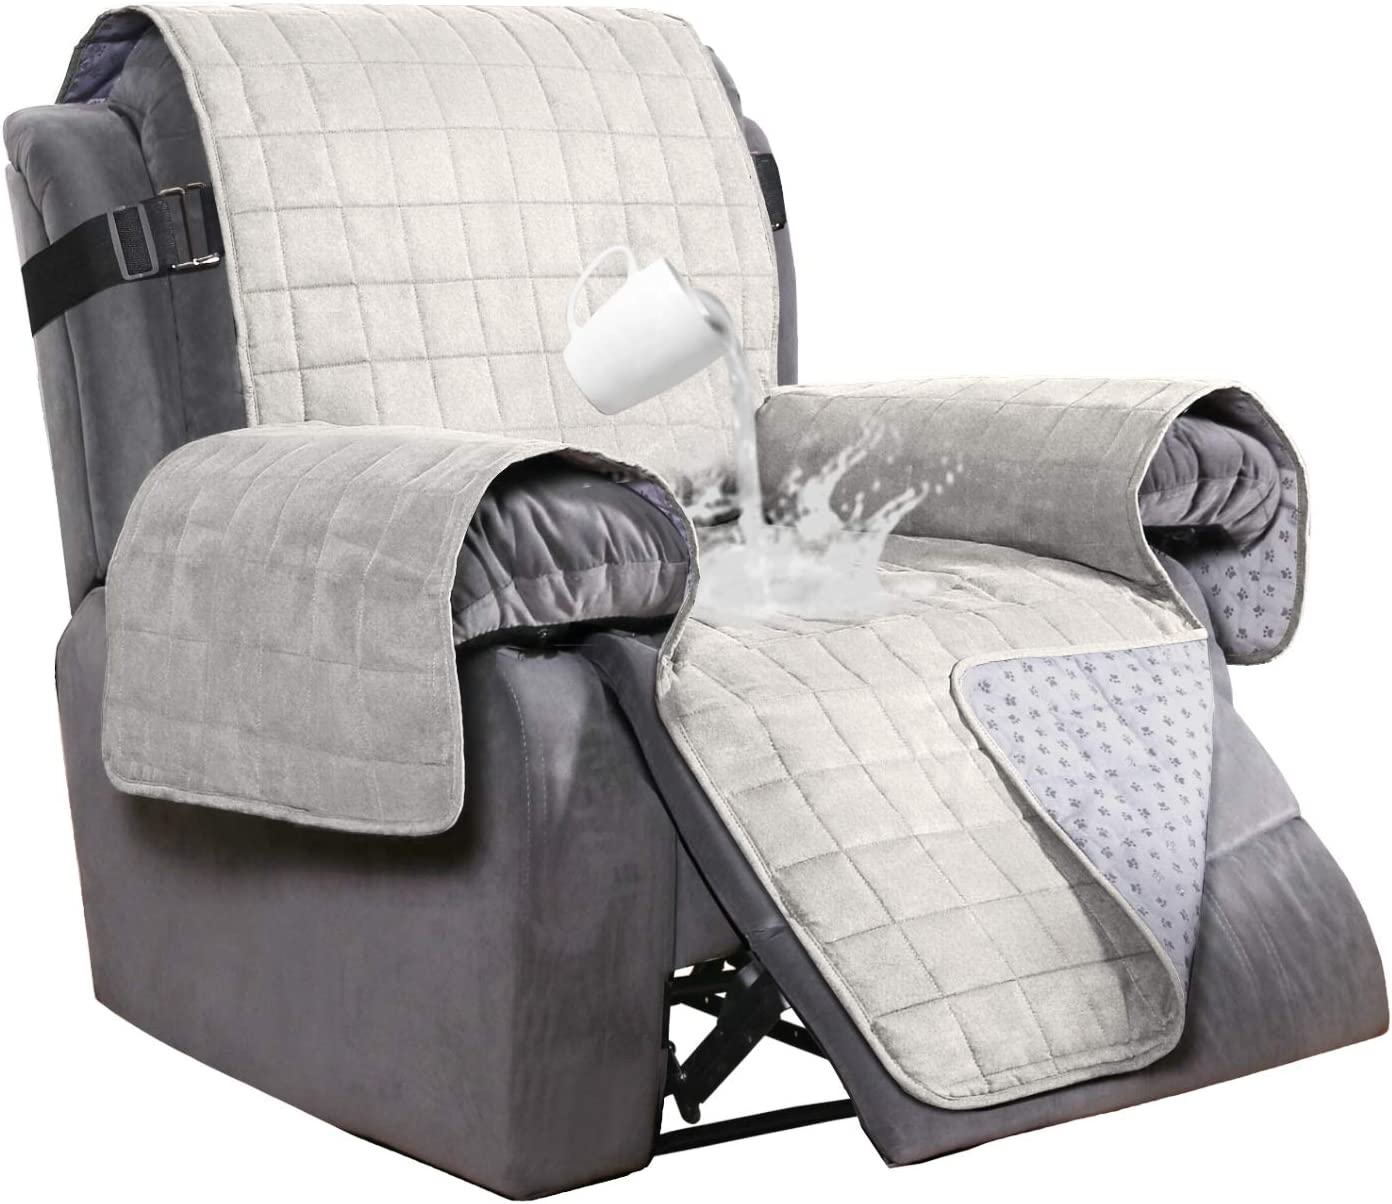 Waterproof Suede Recliner Chair Cover, Chair Covers For Sofa Recliners